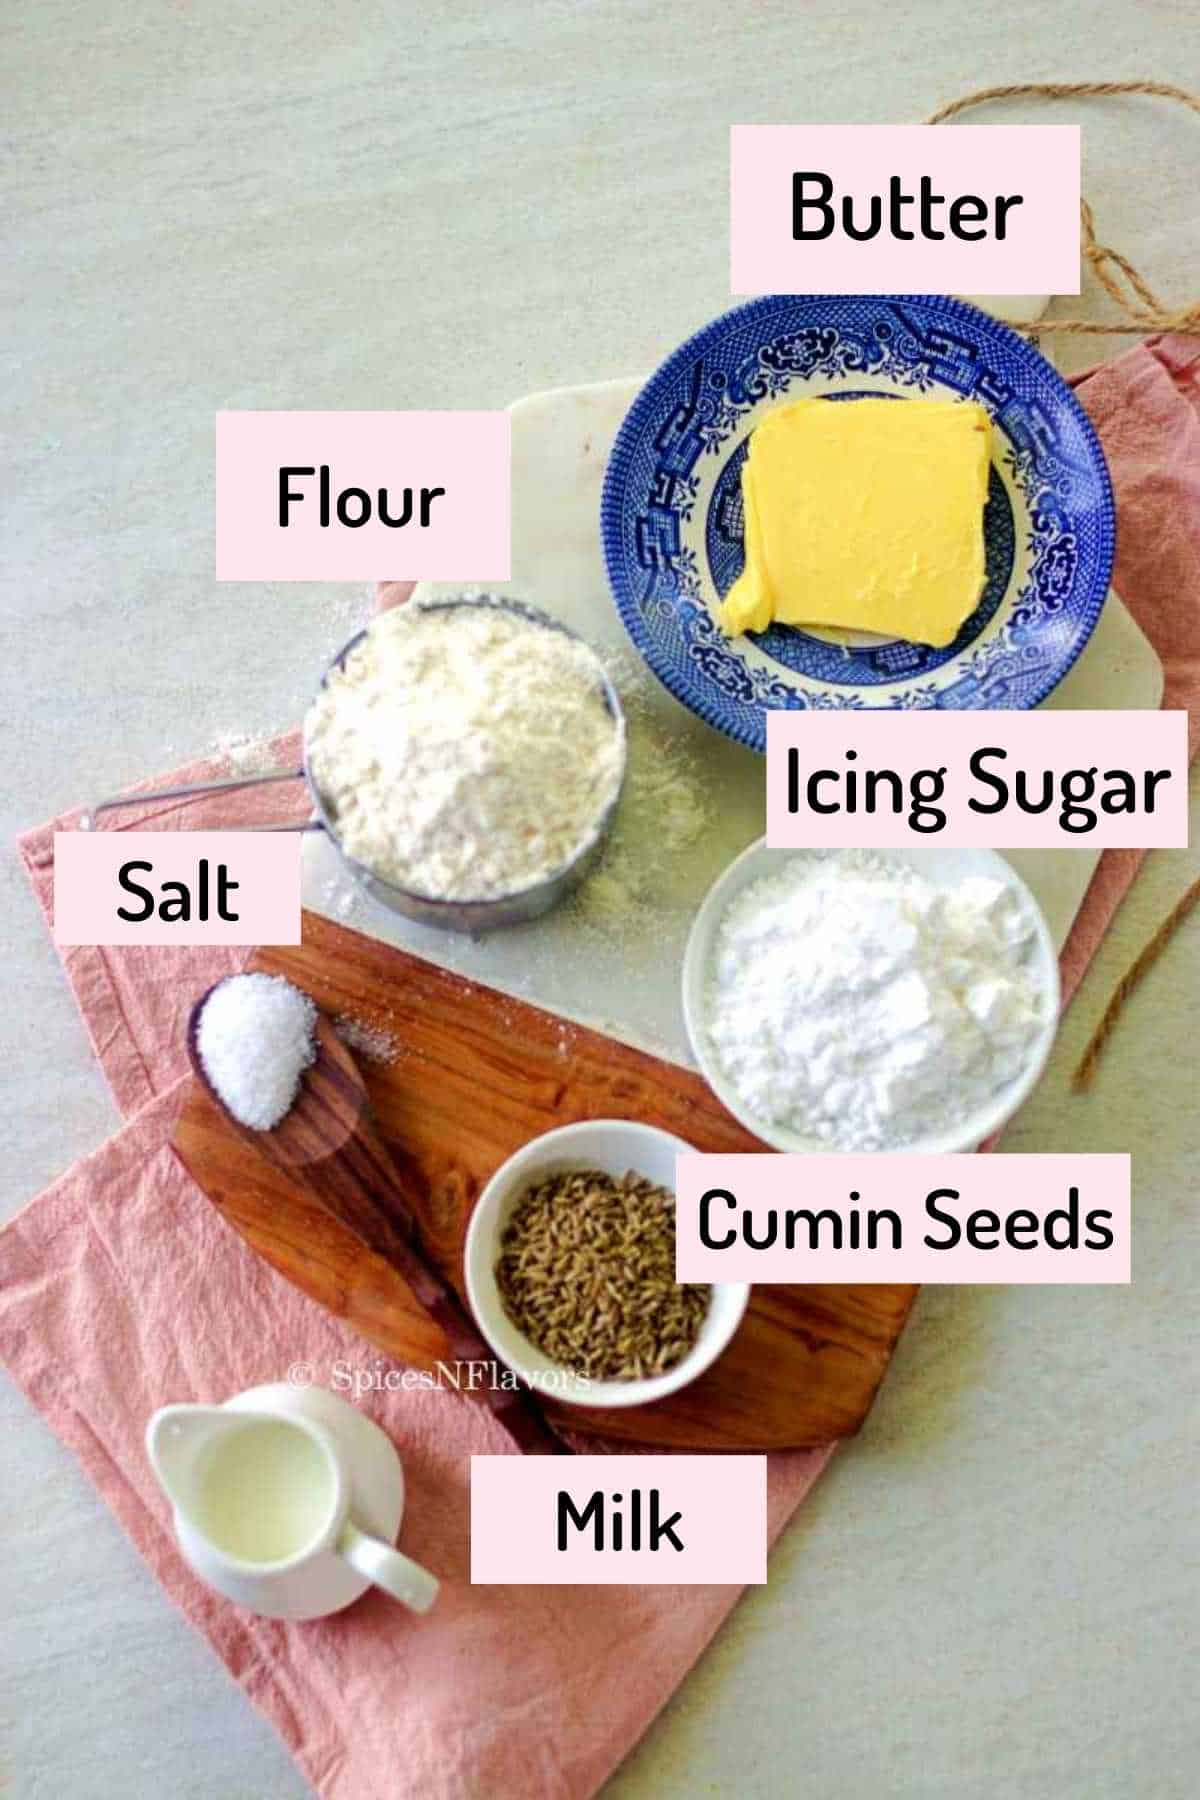 ingredients needed to make biscuits are placed on a marble cutting board